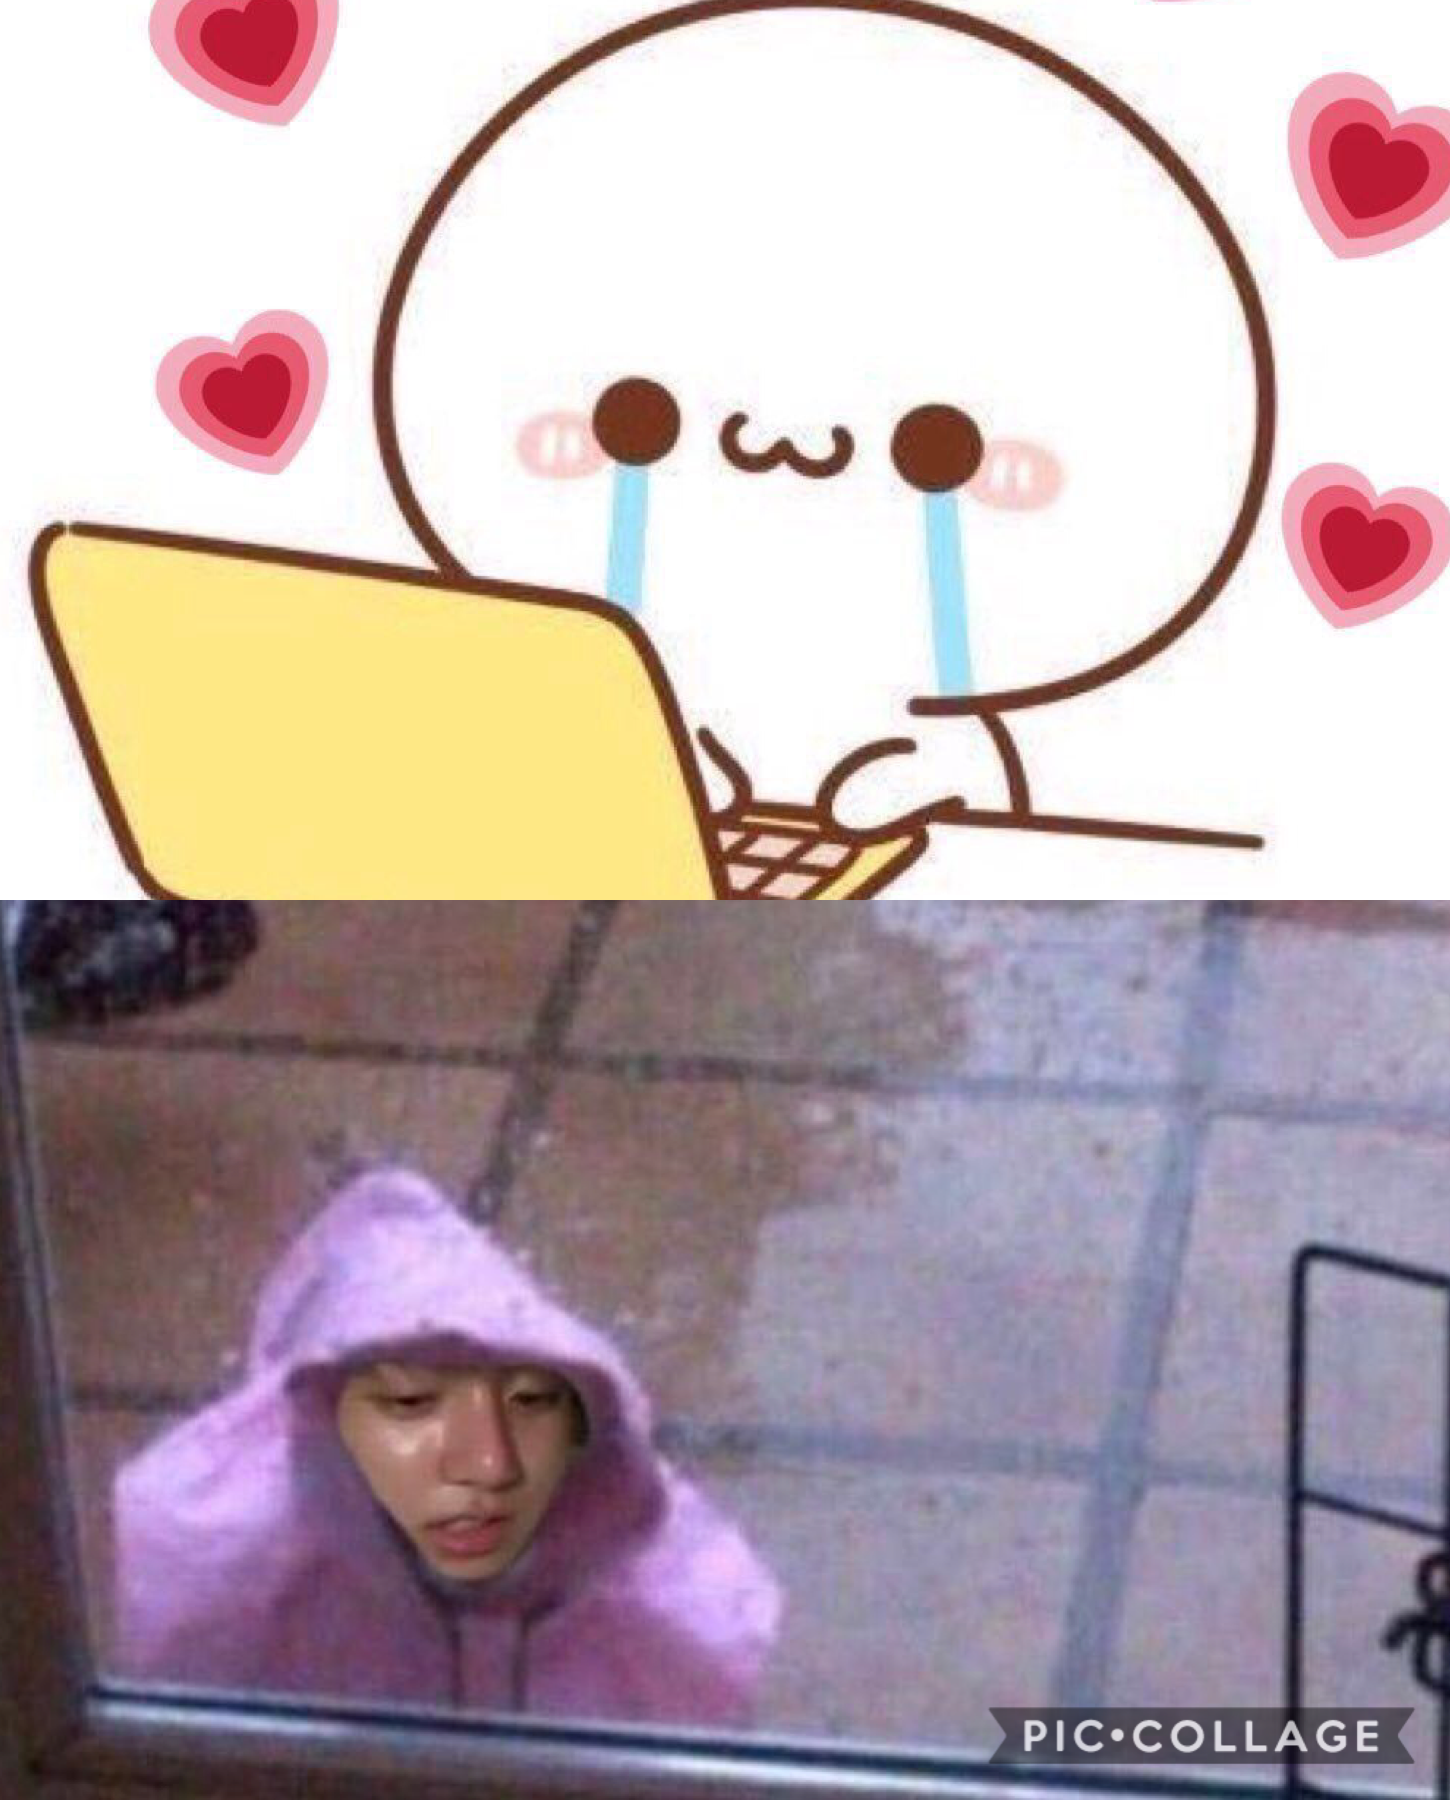 BangBang Con was lit.....but now I'm missing the boys sad girlie hours ✊😔 BUT IT WAS SUPER FUN FANGIRLING WITH YALL AND YOU KNOW WHO YOU ARE *cough* sir willis *cough* and LoveV😚💖